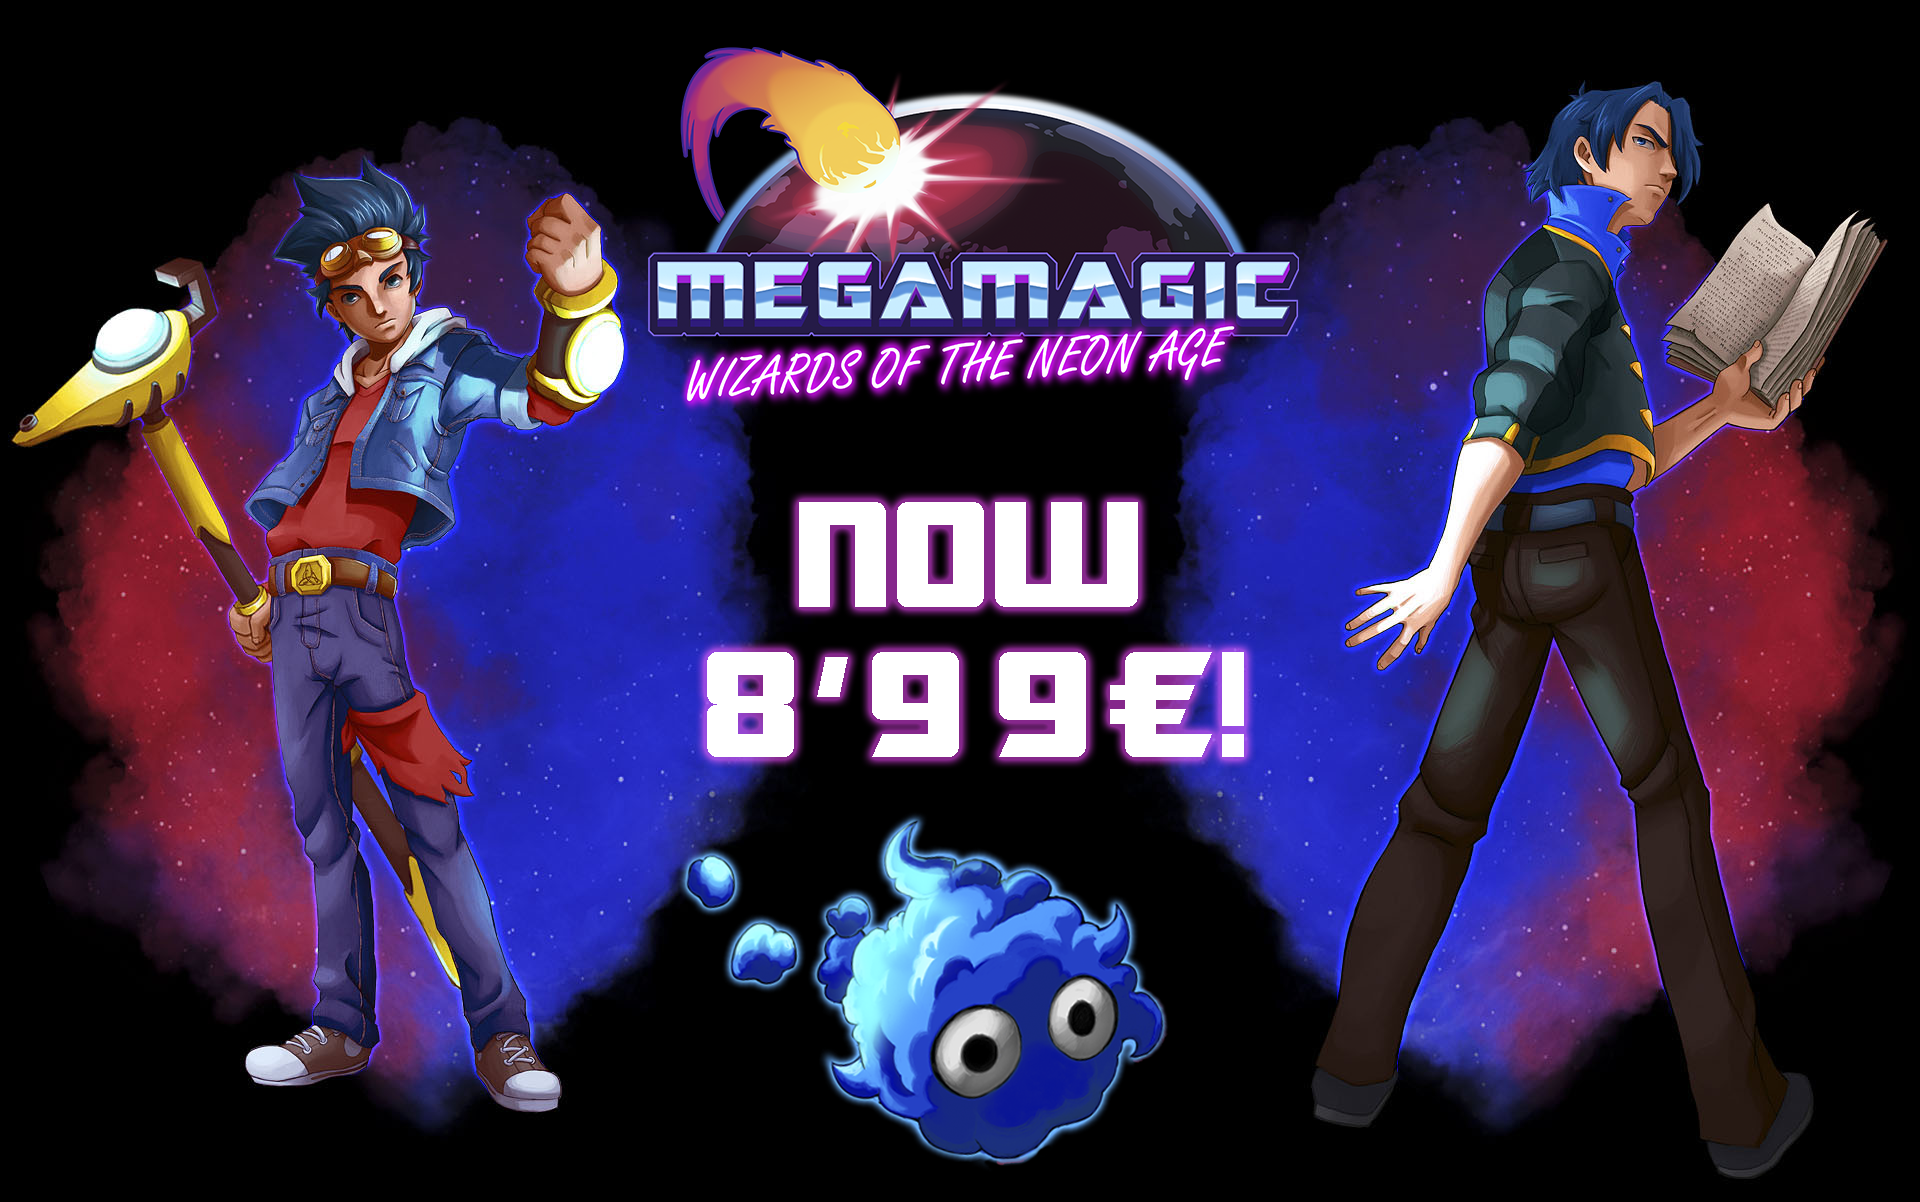 Megamagic Wizards of the Neon Age Megamagic now for 8 99€ 9 99